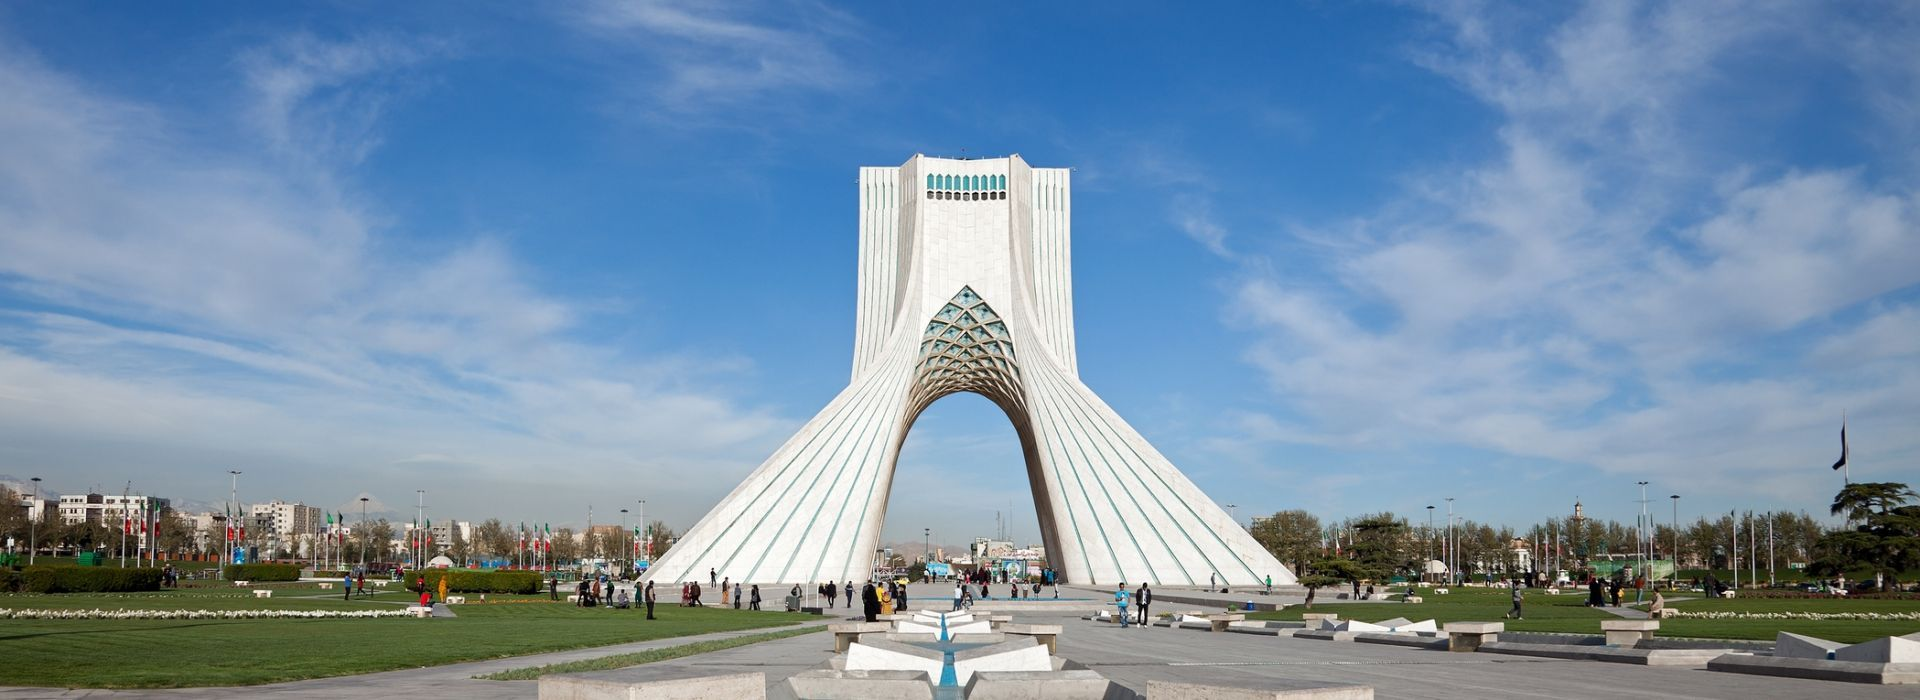 Sightseeing, attractions, culture and history Tours in Tehran